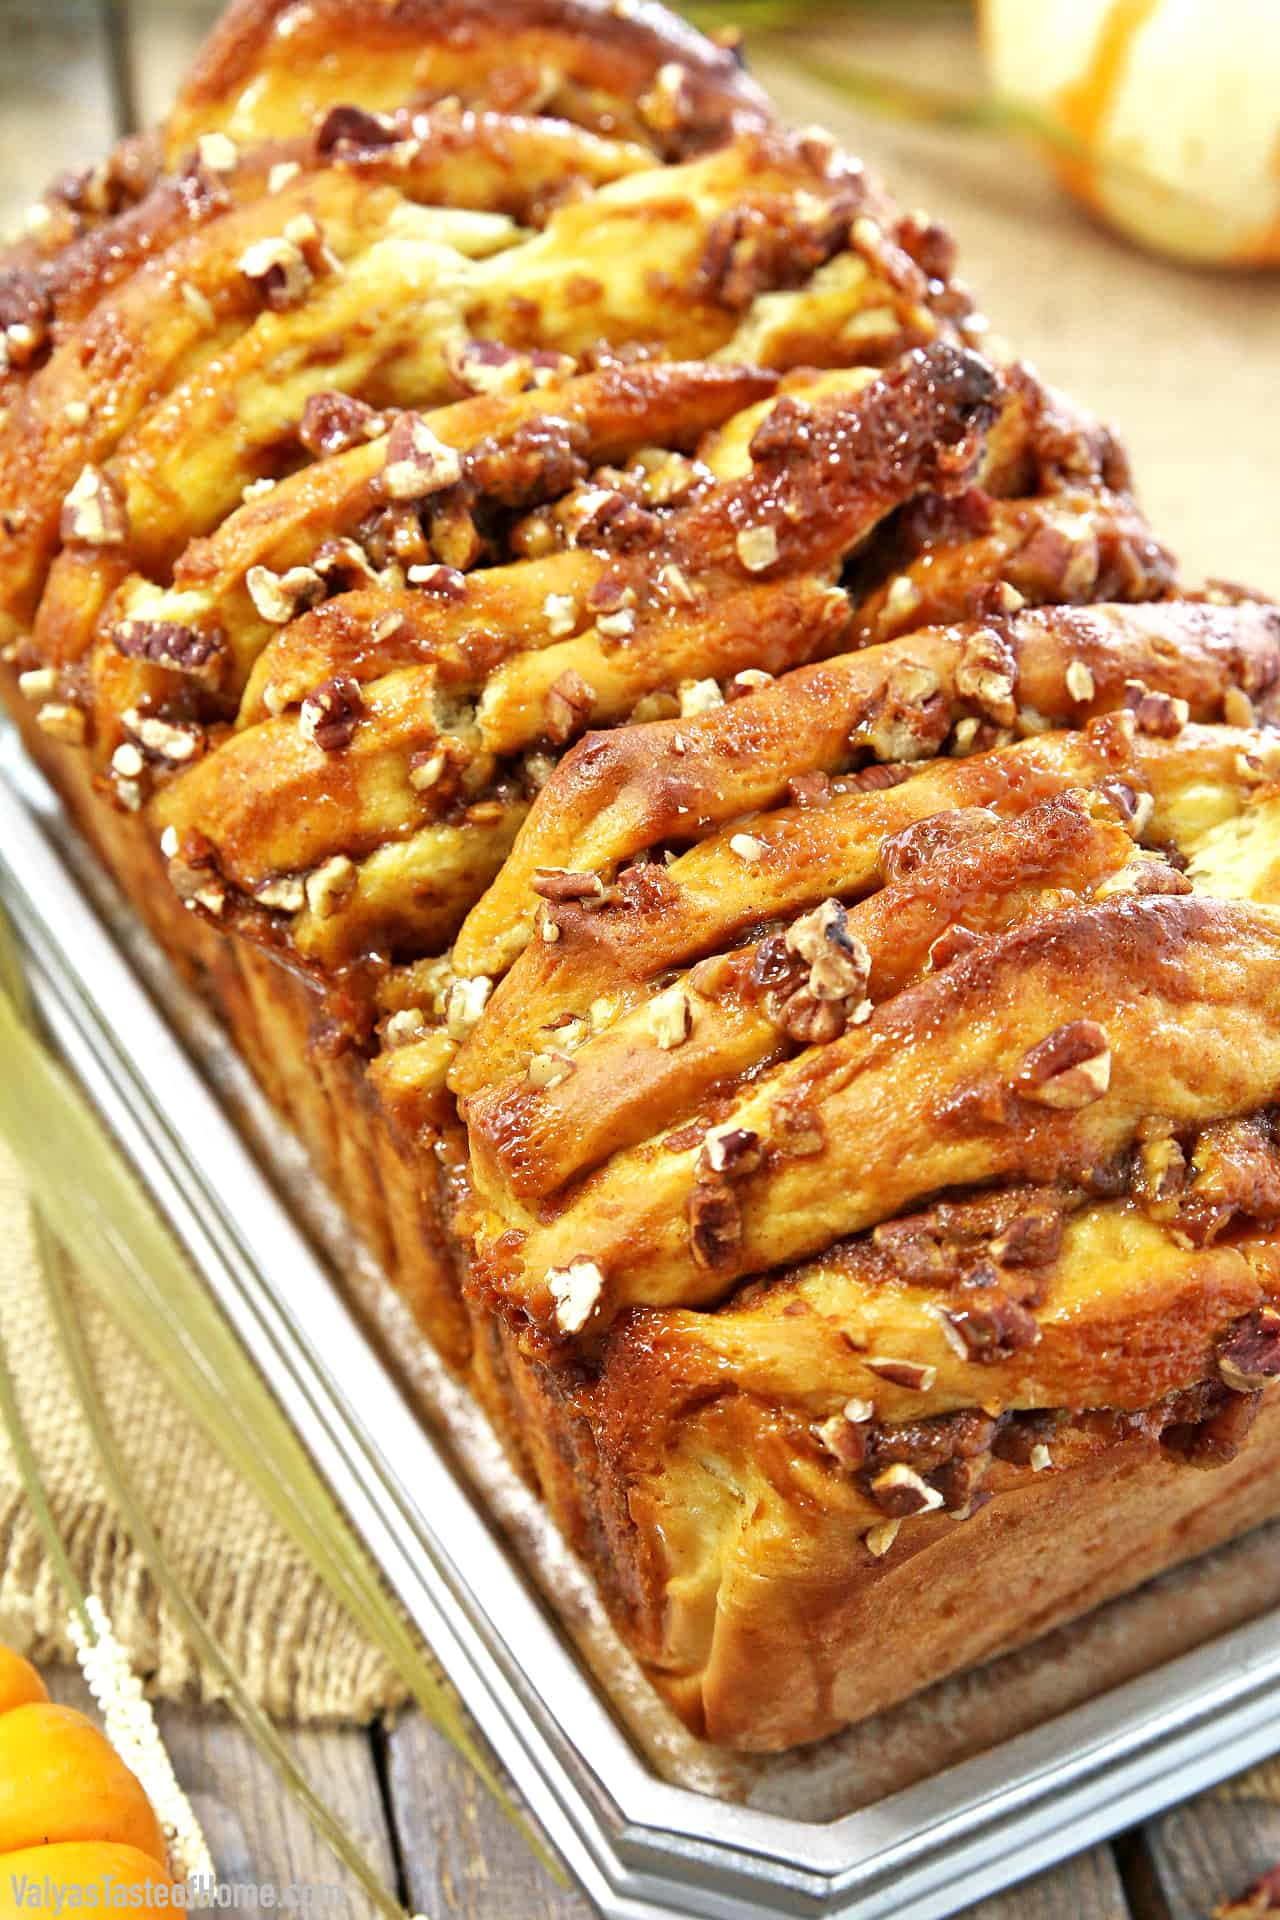 The name of this treat, Pumpkin Pull-Apart Bread with Pecans and Caramel, pretty much covers it! Filled with wonderful flavors we all love about Fall, it's sure to satisfy your sweet cravings.